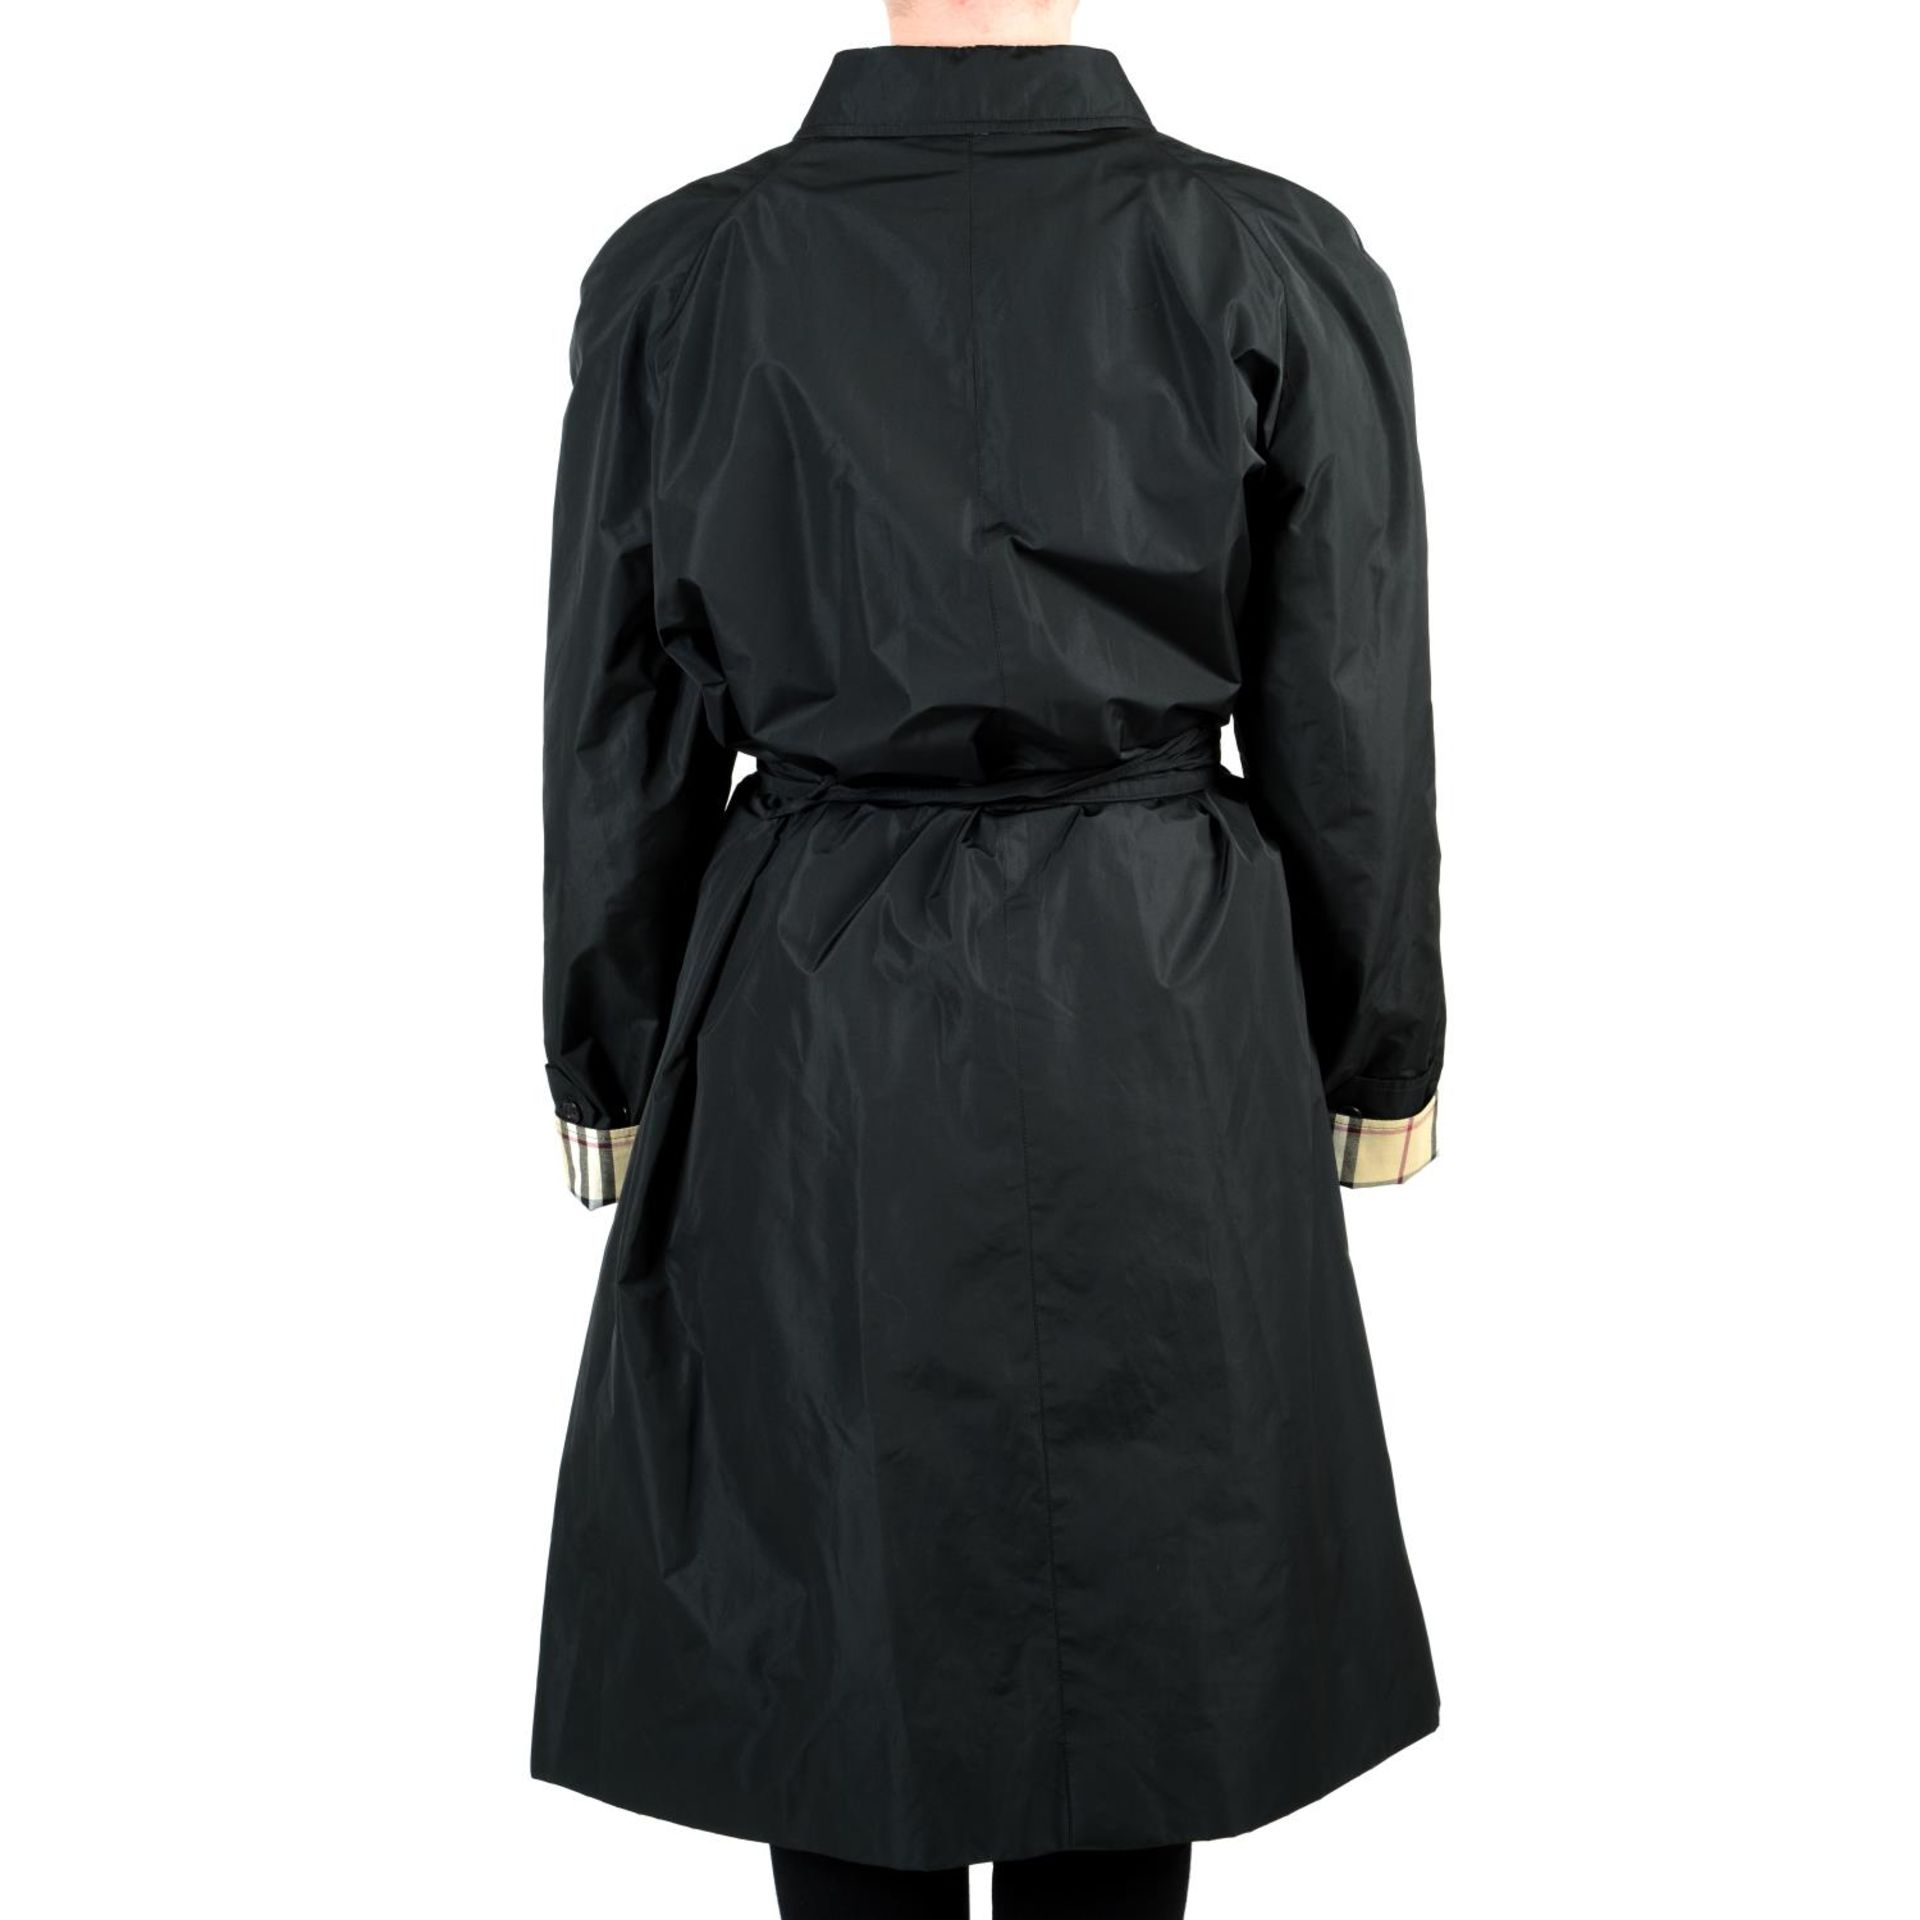 BURBERRY - a black raincoat. - Image 2 of 4